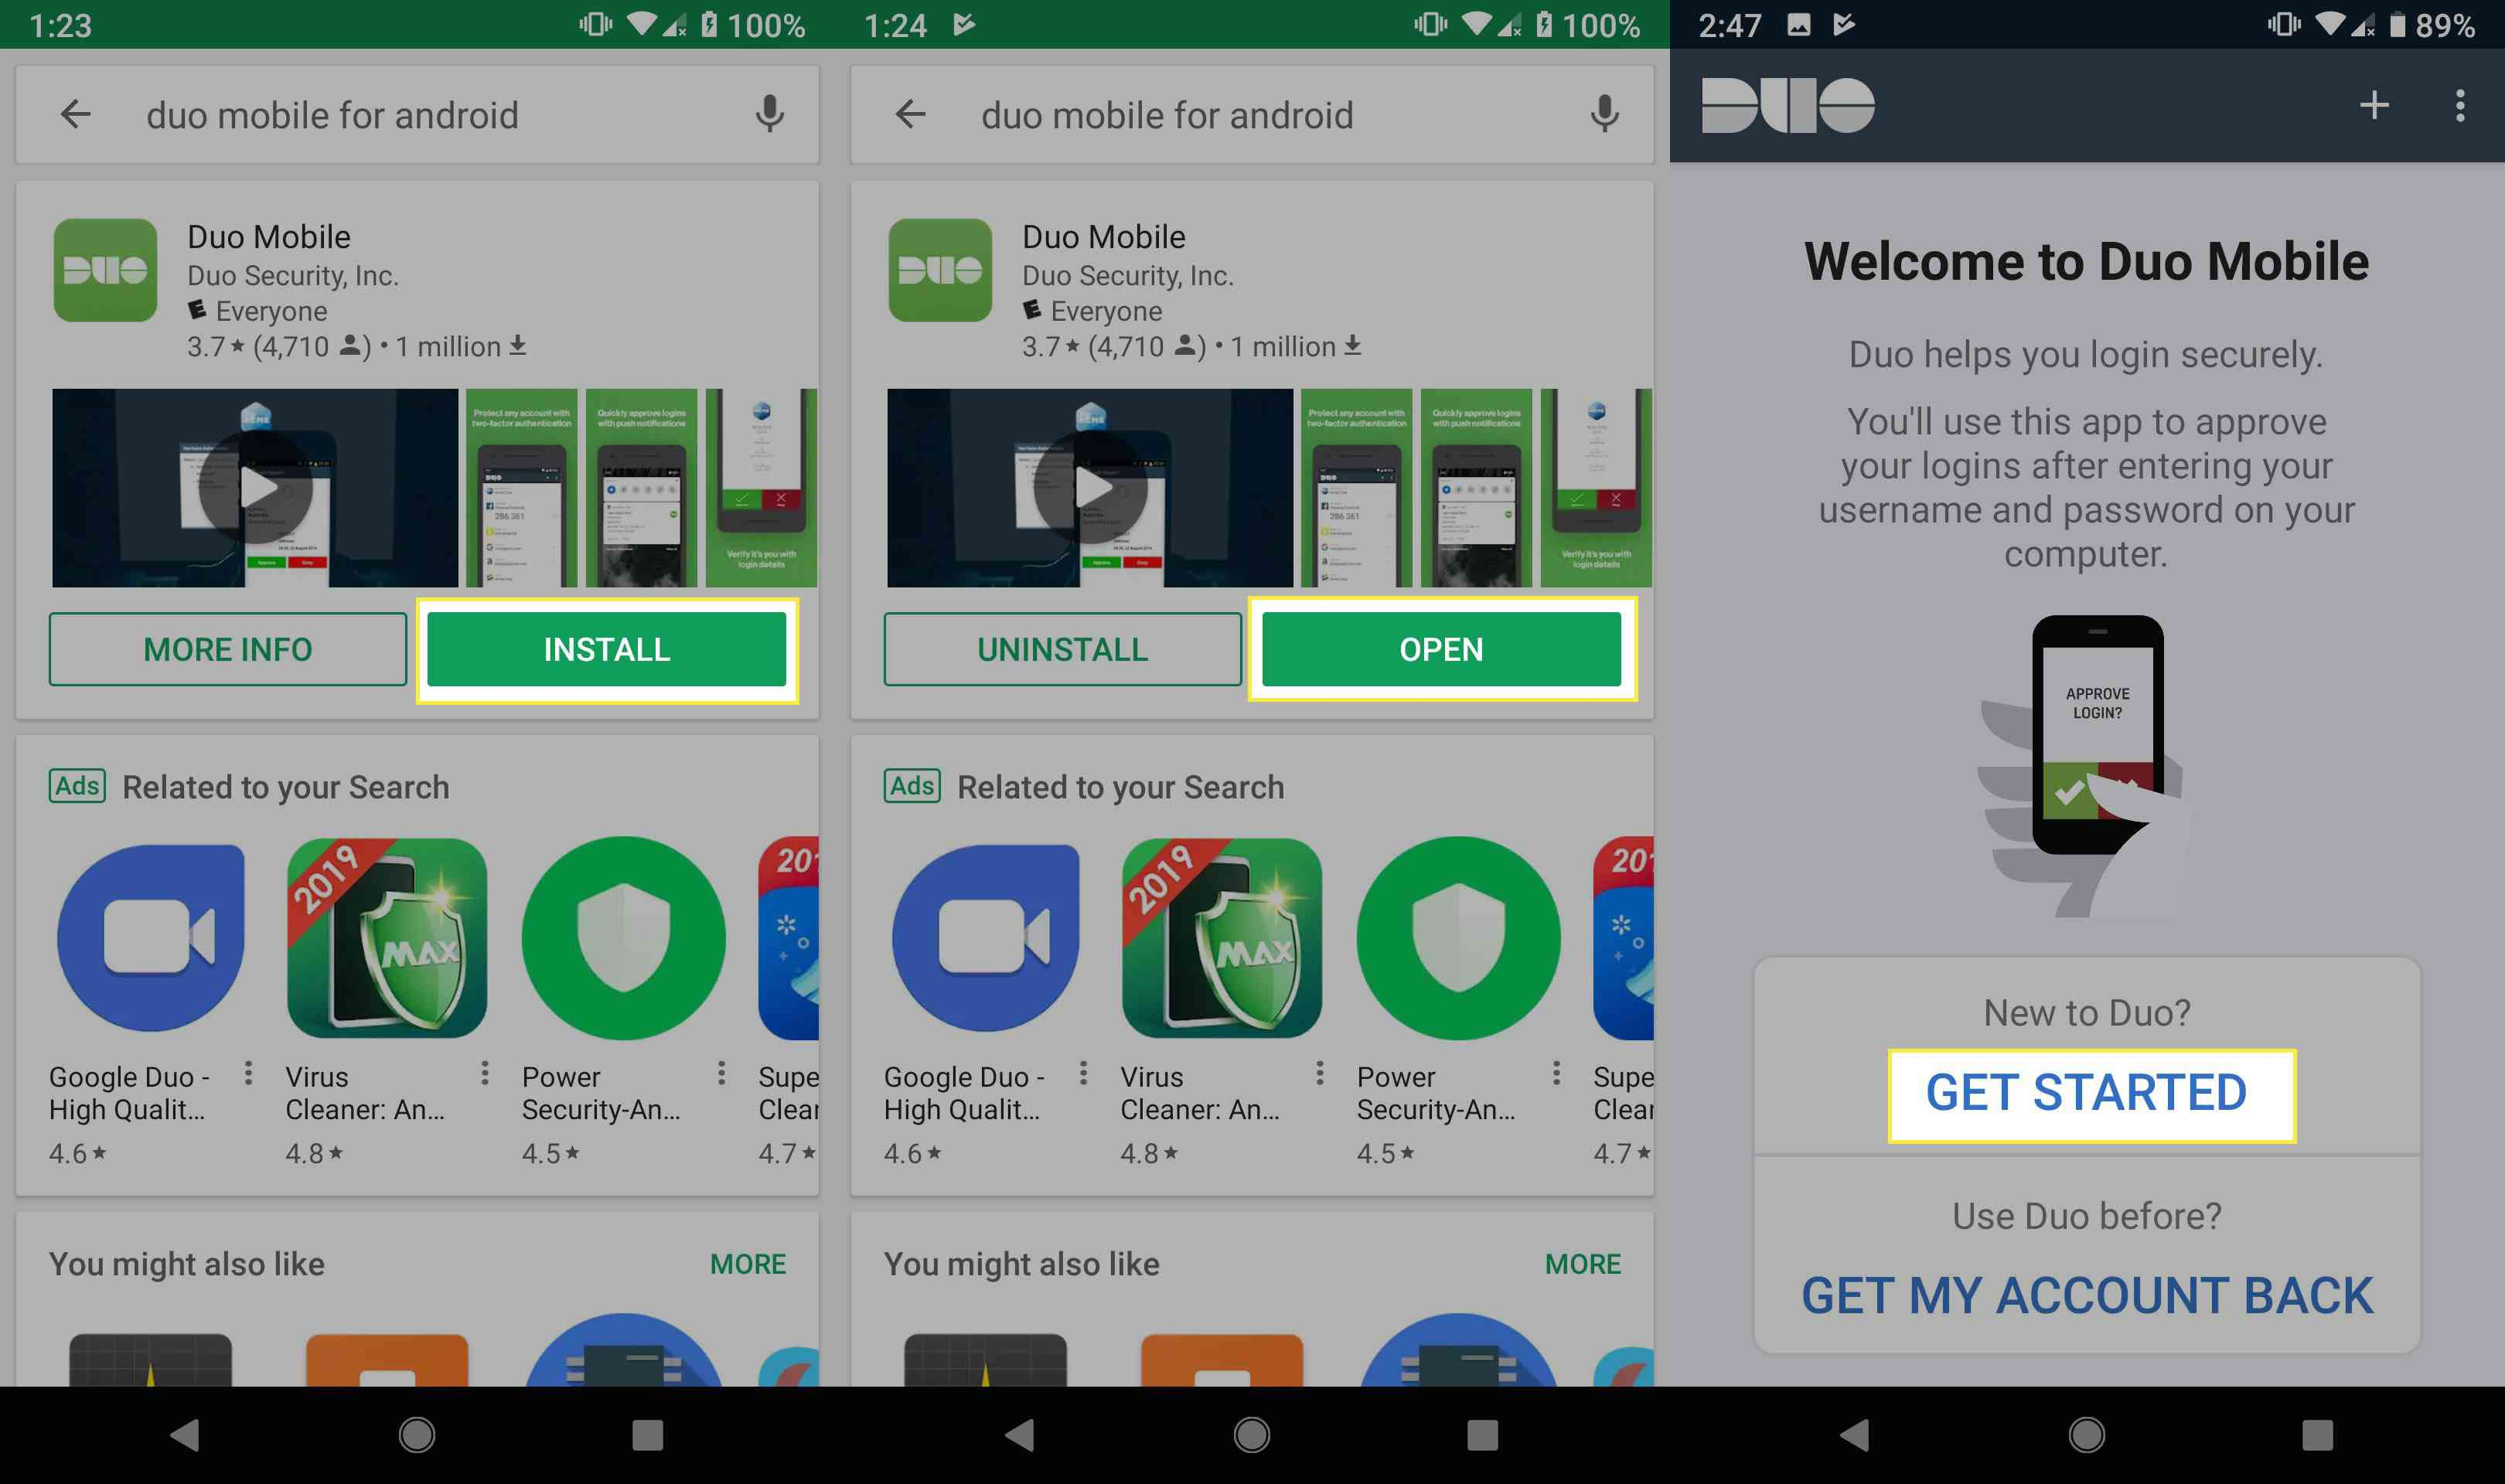 Download and install the Duo Mobile Android app